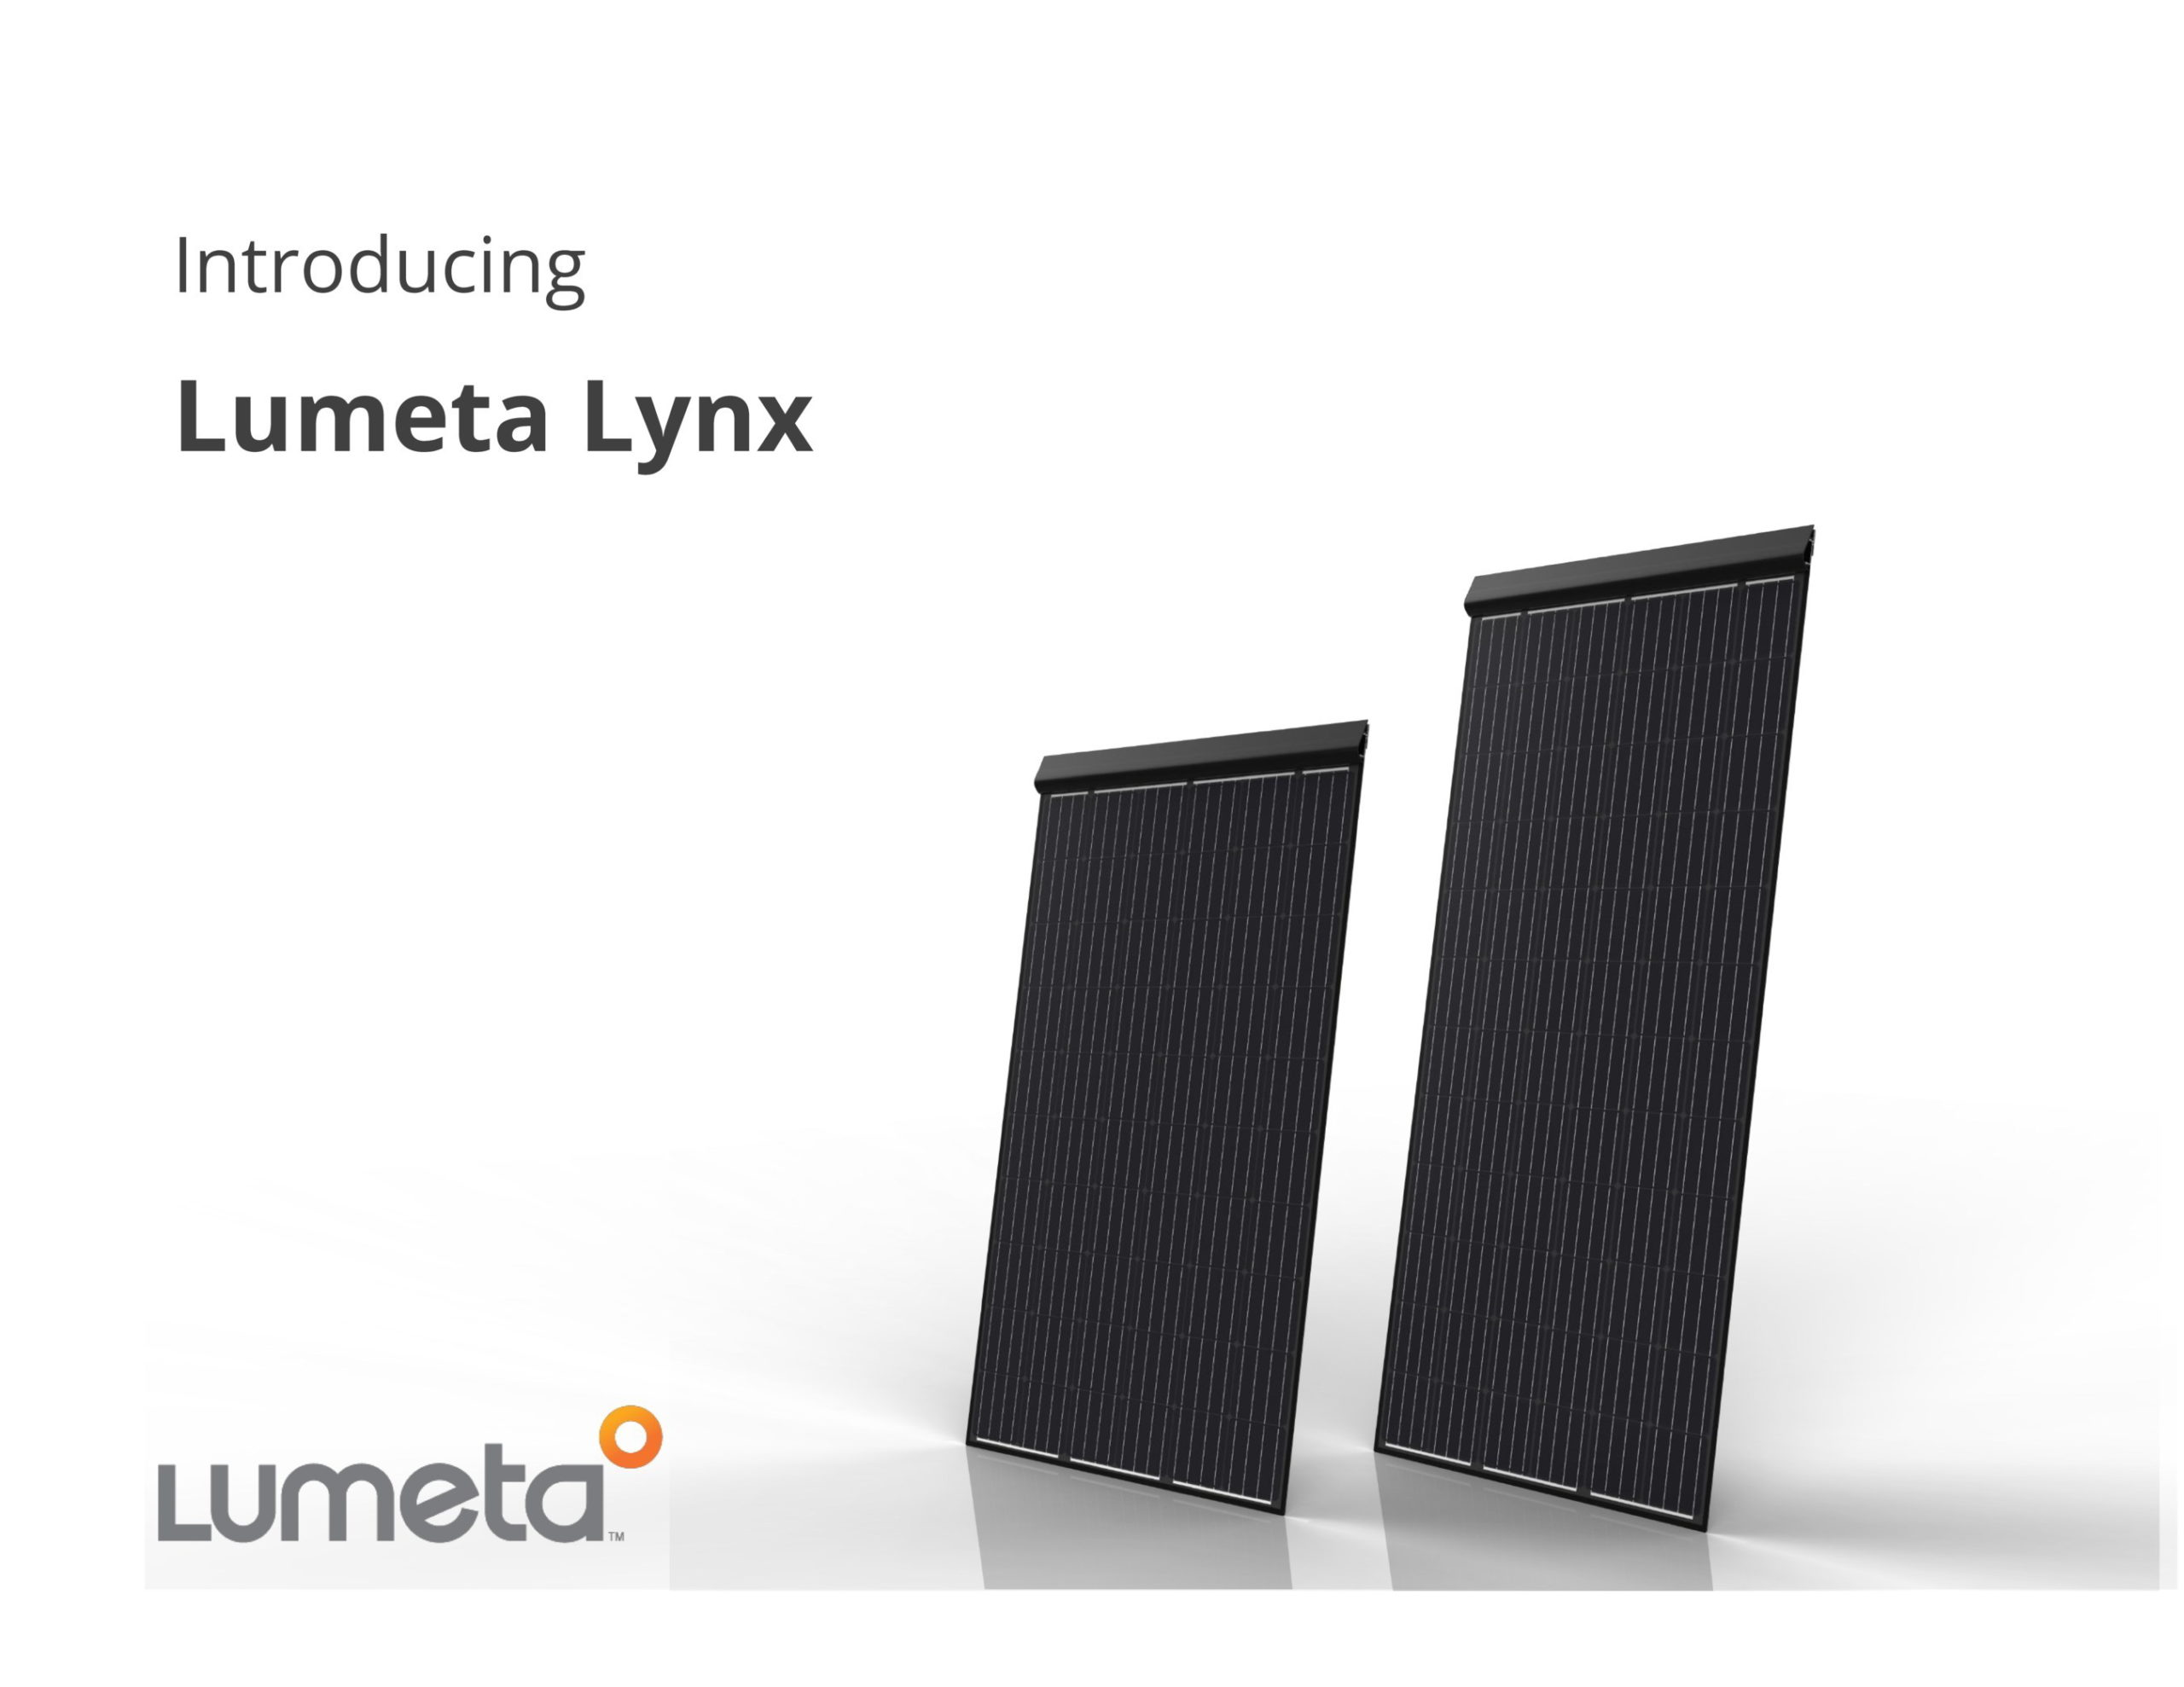 The Lumeta Lynx 72 is a 360W 18.3% efficient module designed for installation on almost all commercial roof systems. Image: Lumeta